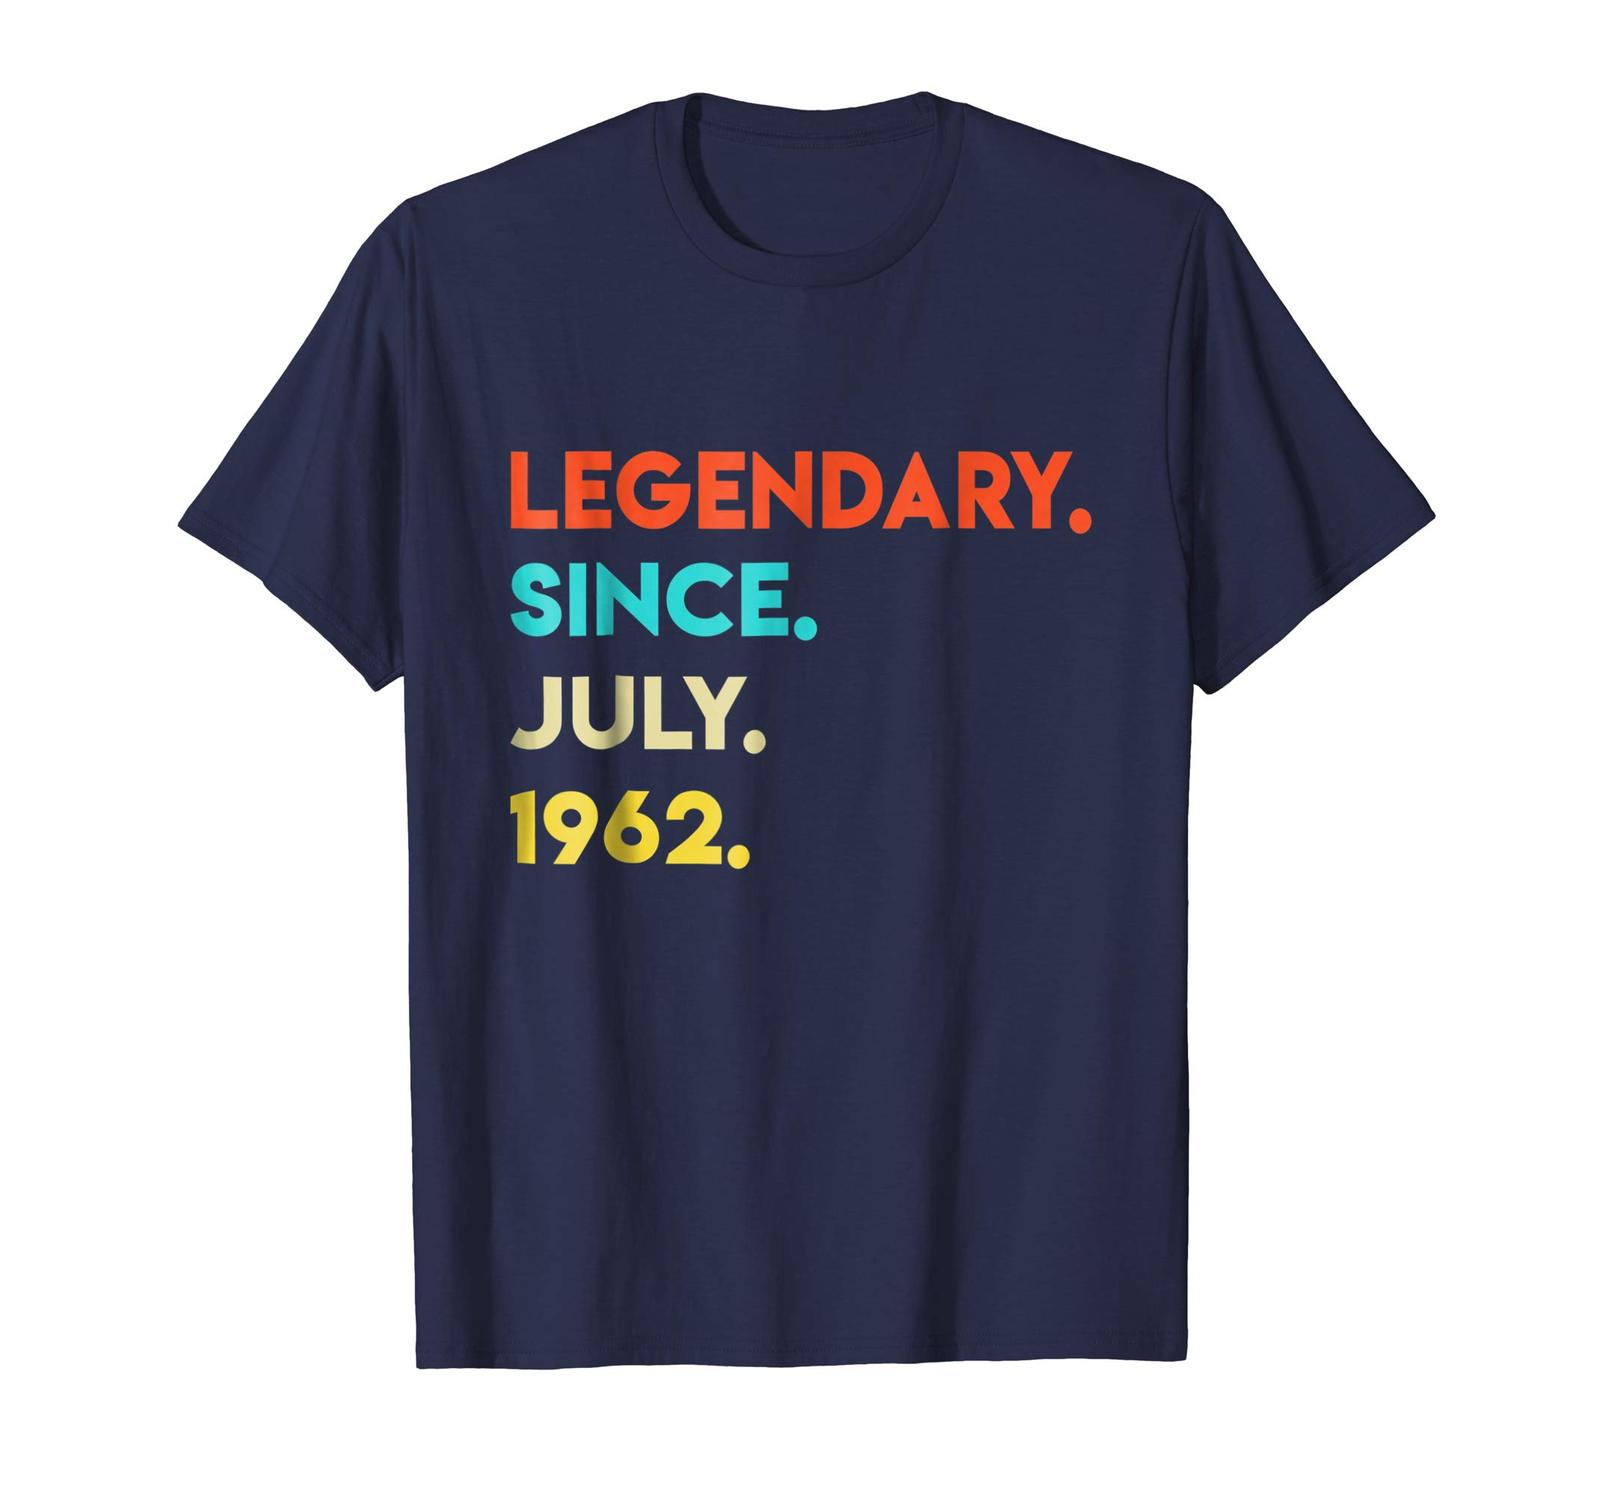 Primary image for Brother Shirts - Vintage Legendary Since July 1962 Shirt 56th Birthday Gifts Men